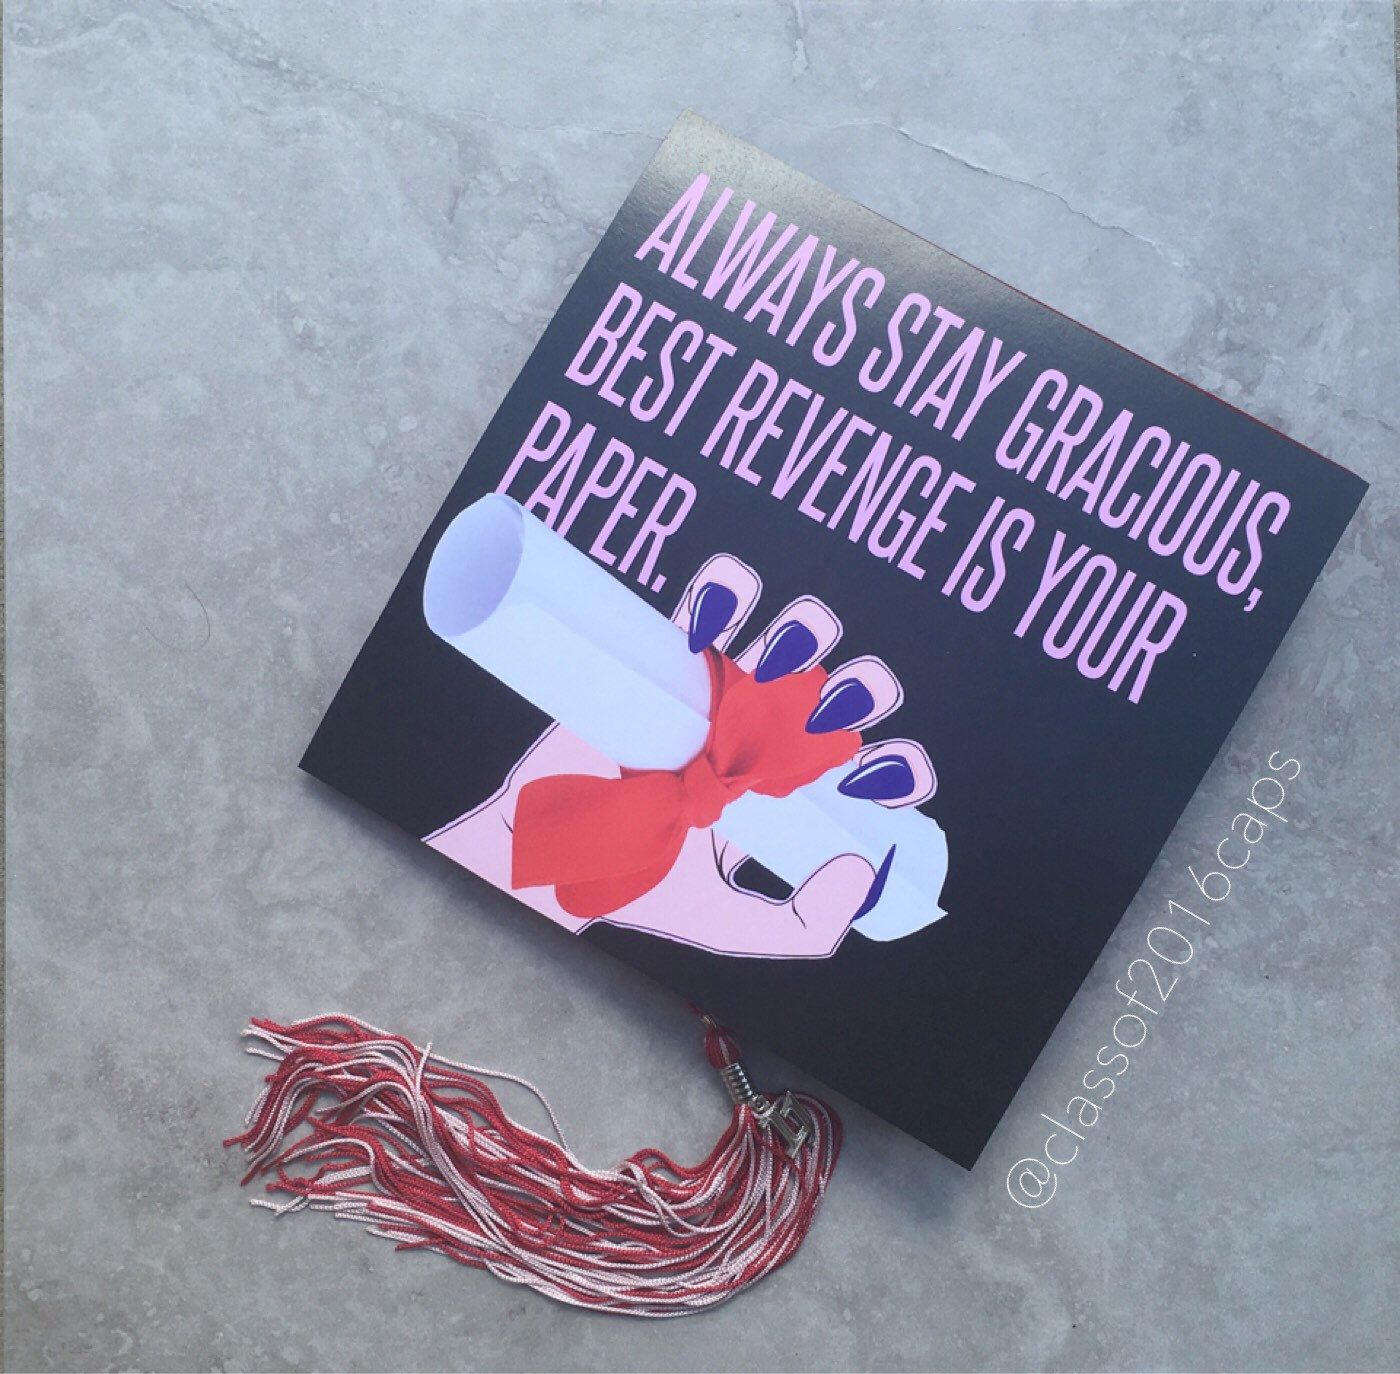 Small Crop Of Graduation Cap Quotes